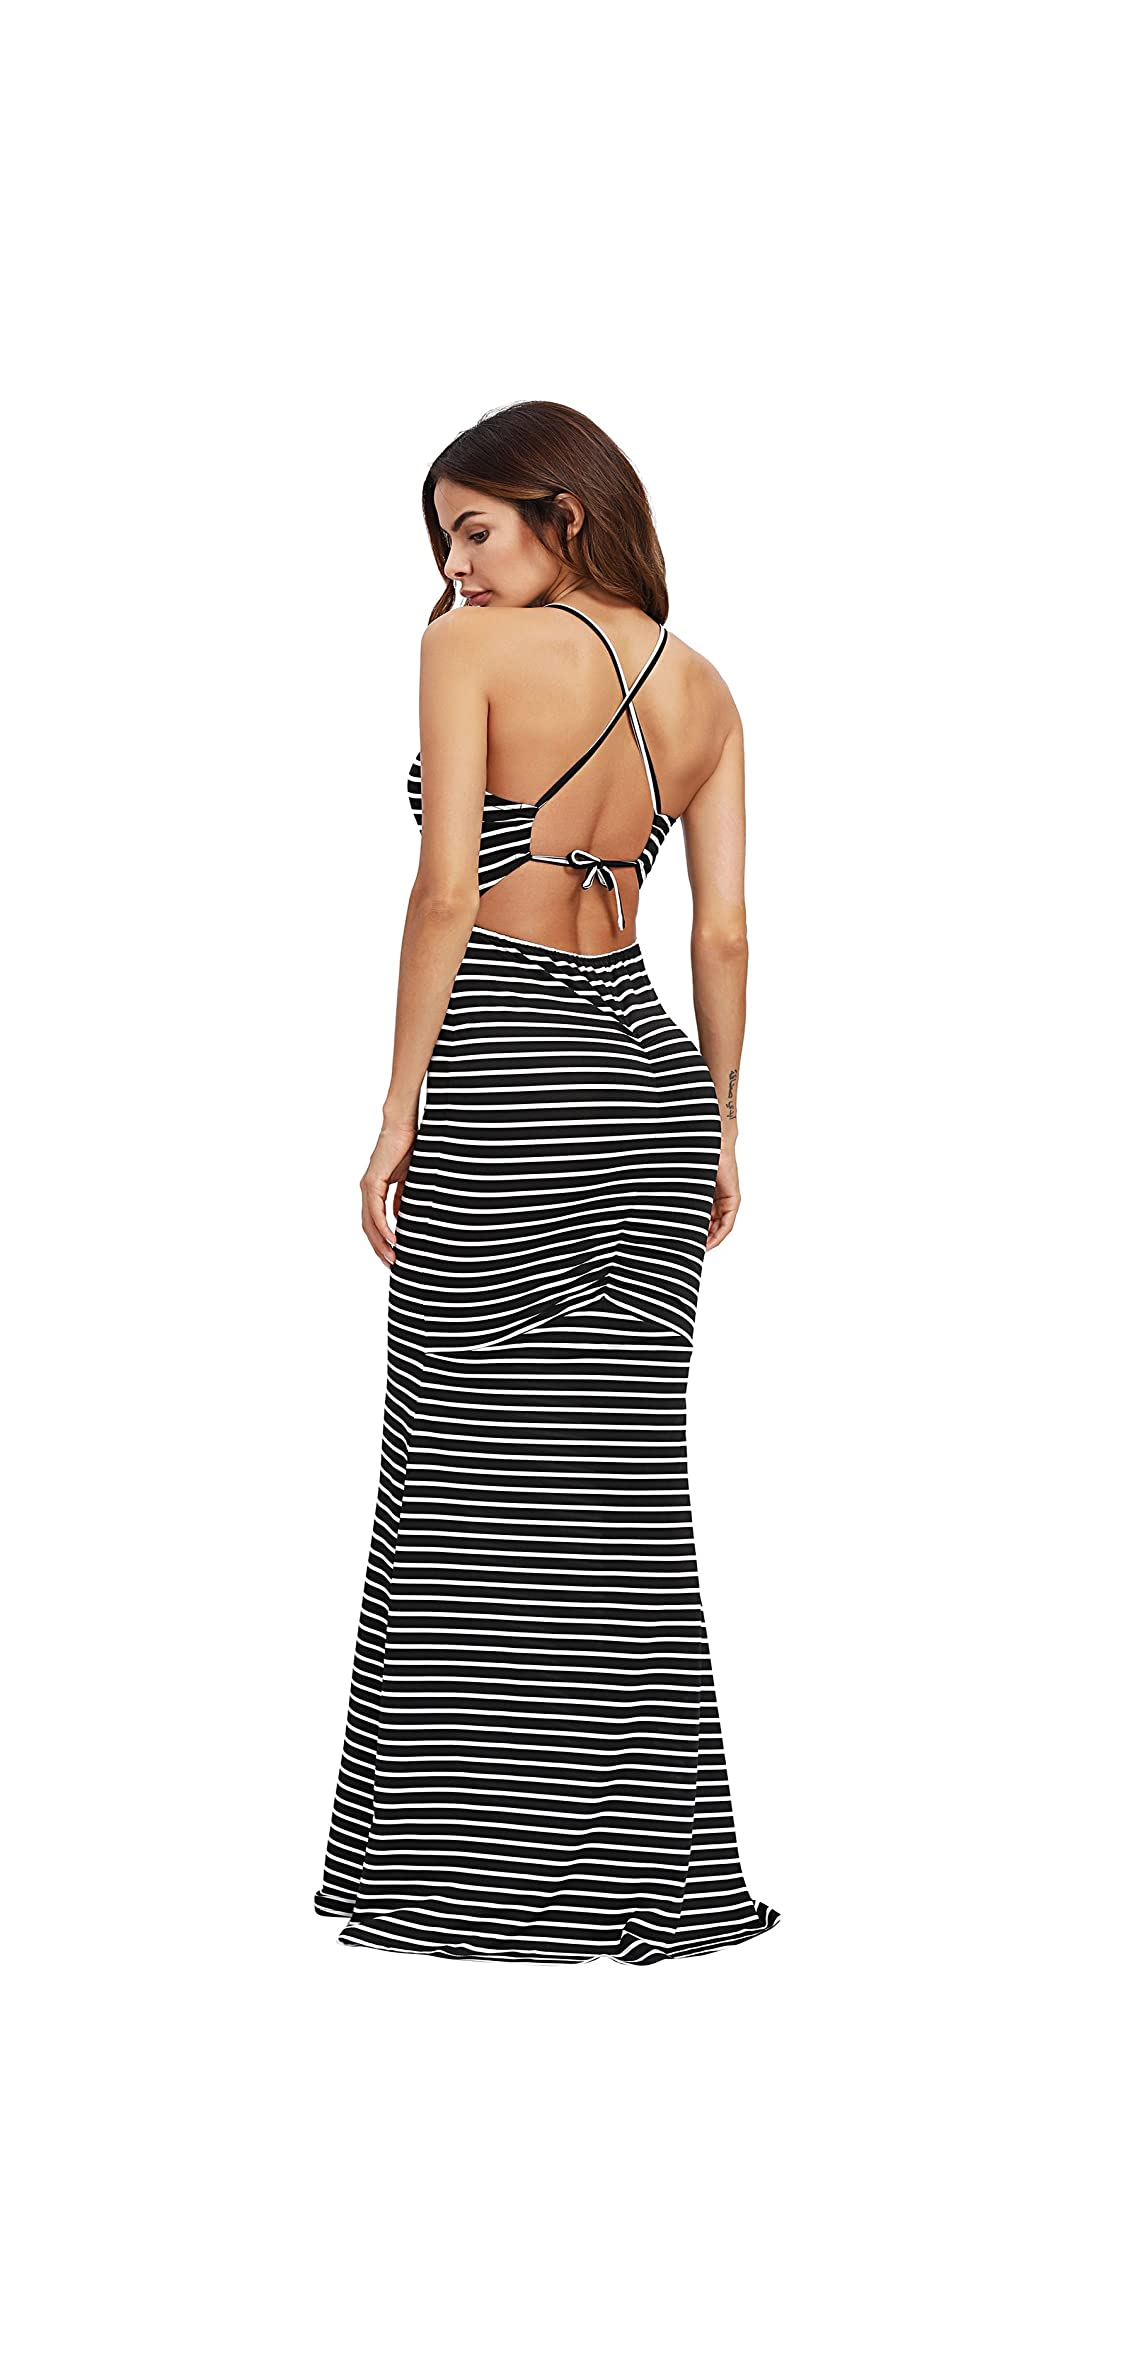 Women's Strappy Backless Summer Evening Party Maxi Dress